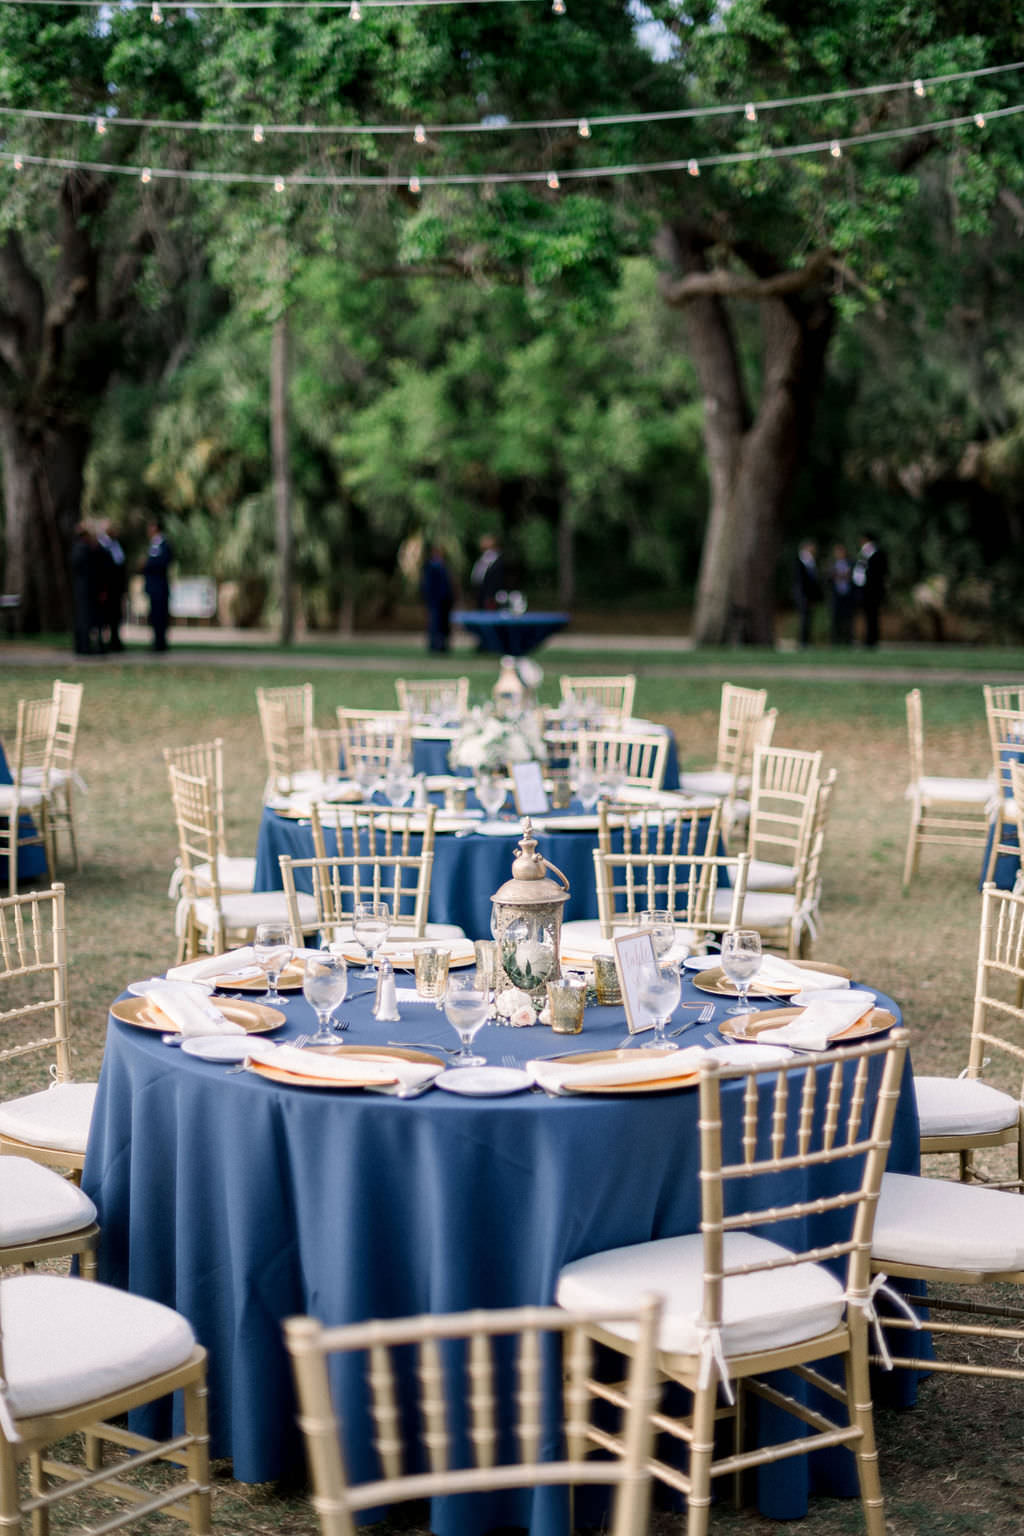 Elegant, Vintage Inspired Outdoor Wedding Decor and Reception, Navy Blue Table Linens, Gold Chargers, Chivari Chairs, Low Centerpiece Lantern, at Powel Crosley Estate | Sarasota Wedding Planner Laura Detwiler Events